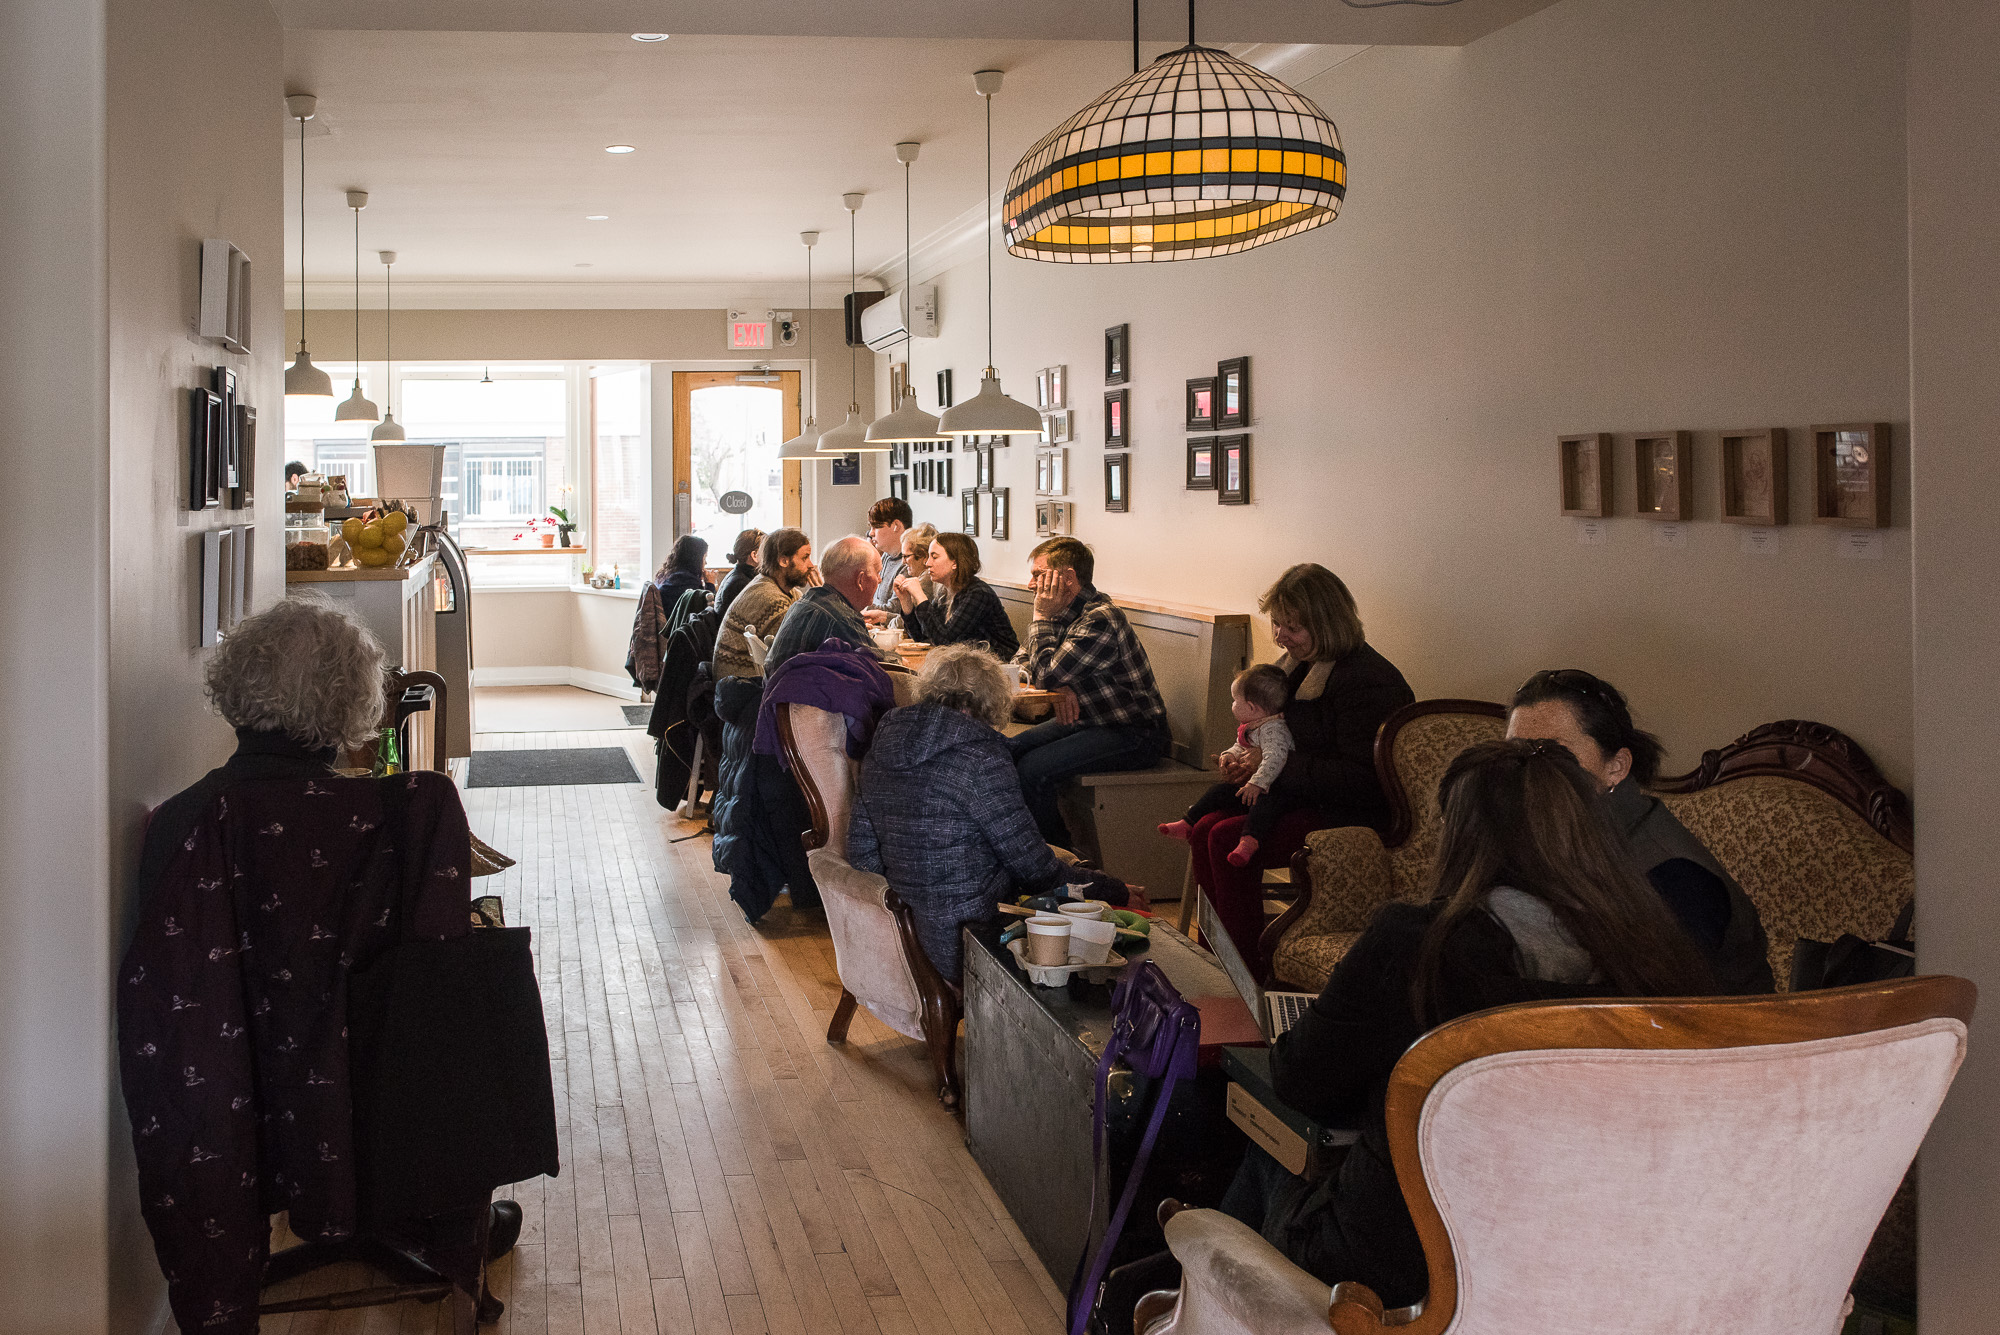 The Elm Cafe attracts patrons from all over Kingston